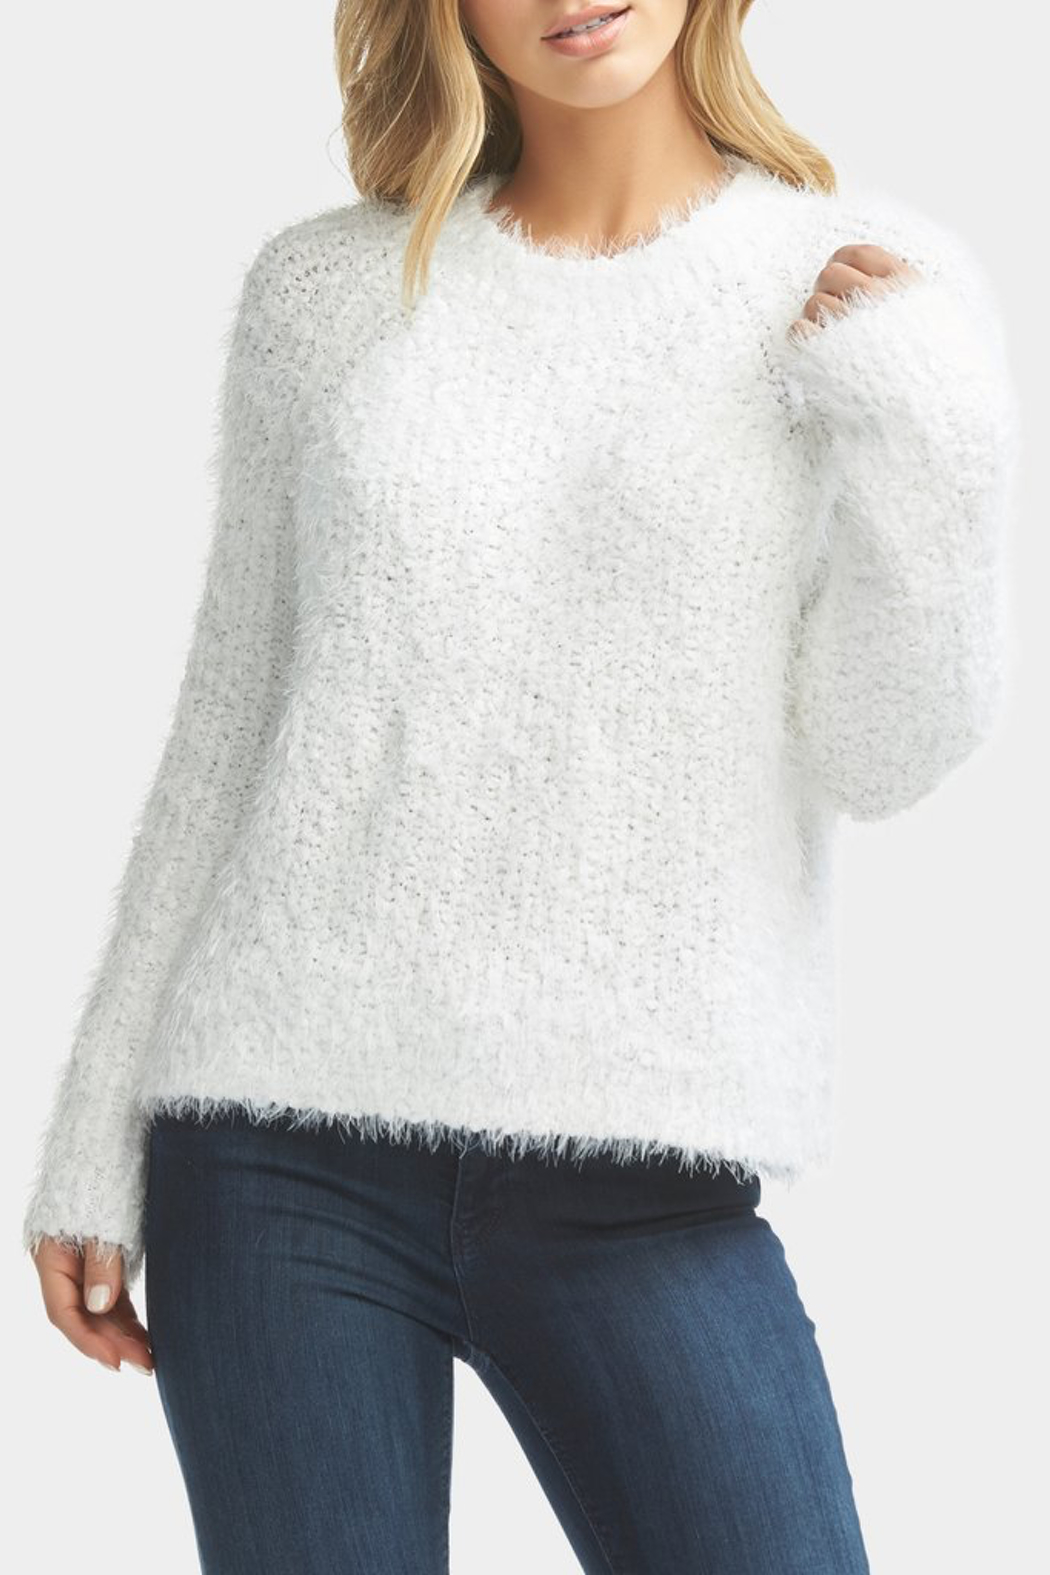 Tart Collections Delisa Sweater - Main Image